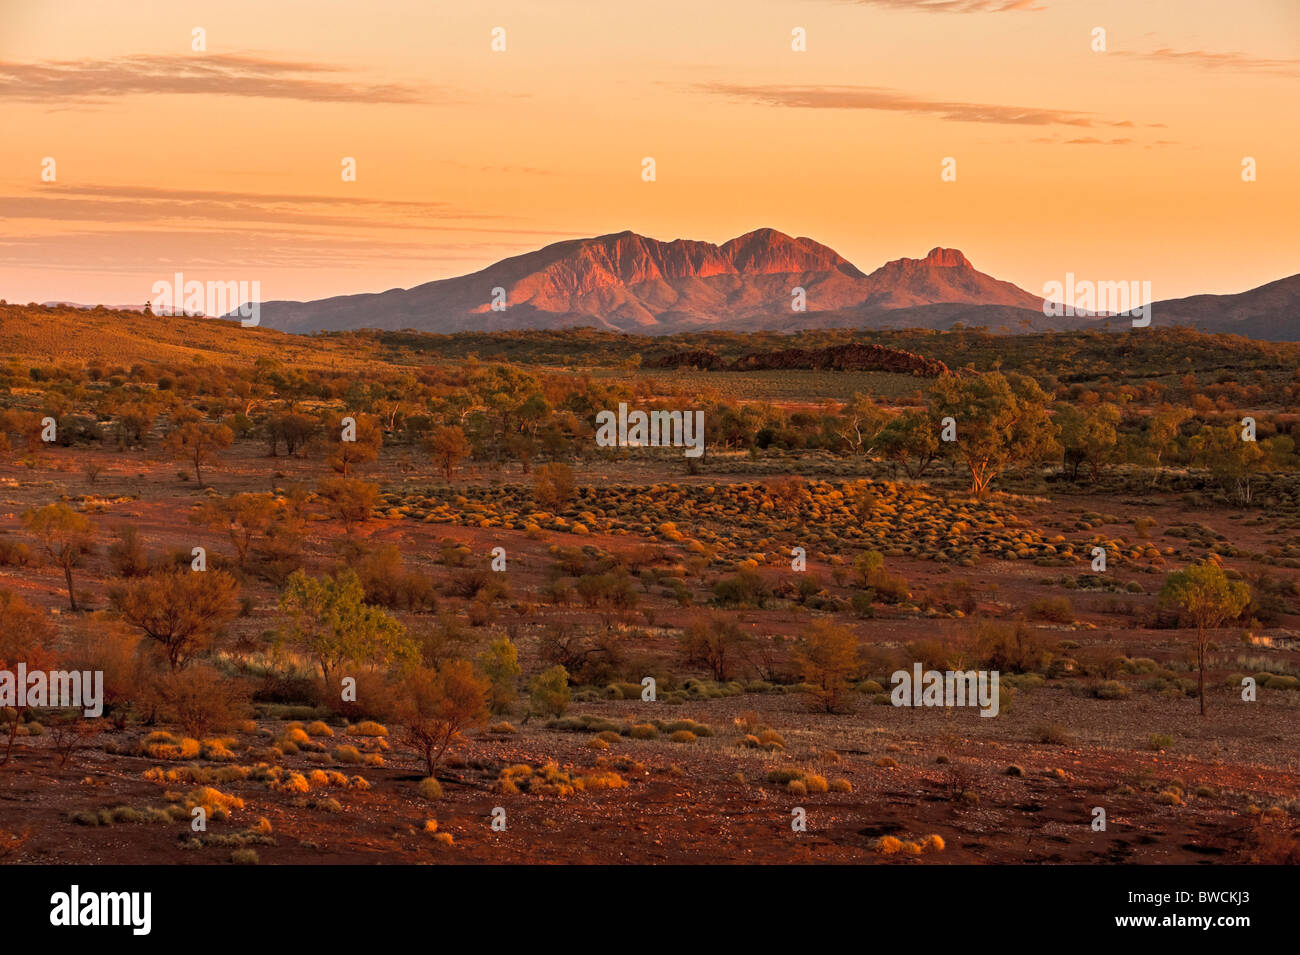 Mount Sonder or Rwetyepme, West MacDonnell Ranges at sunrise. Northern Territory, Australia - Stock Image